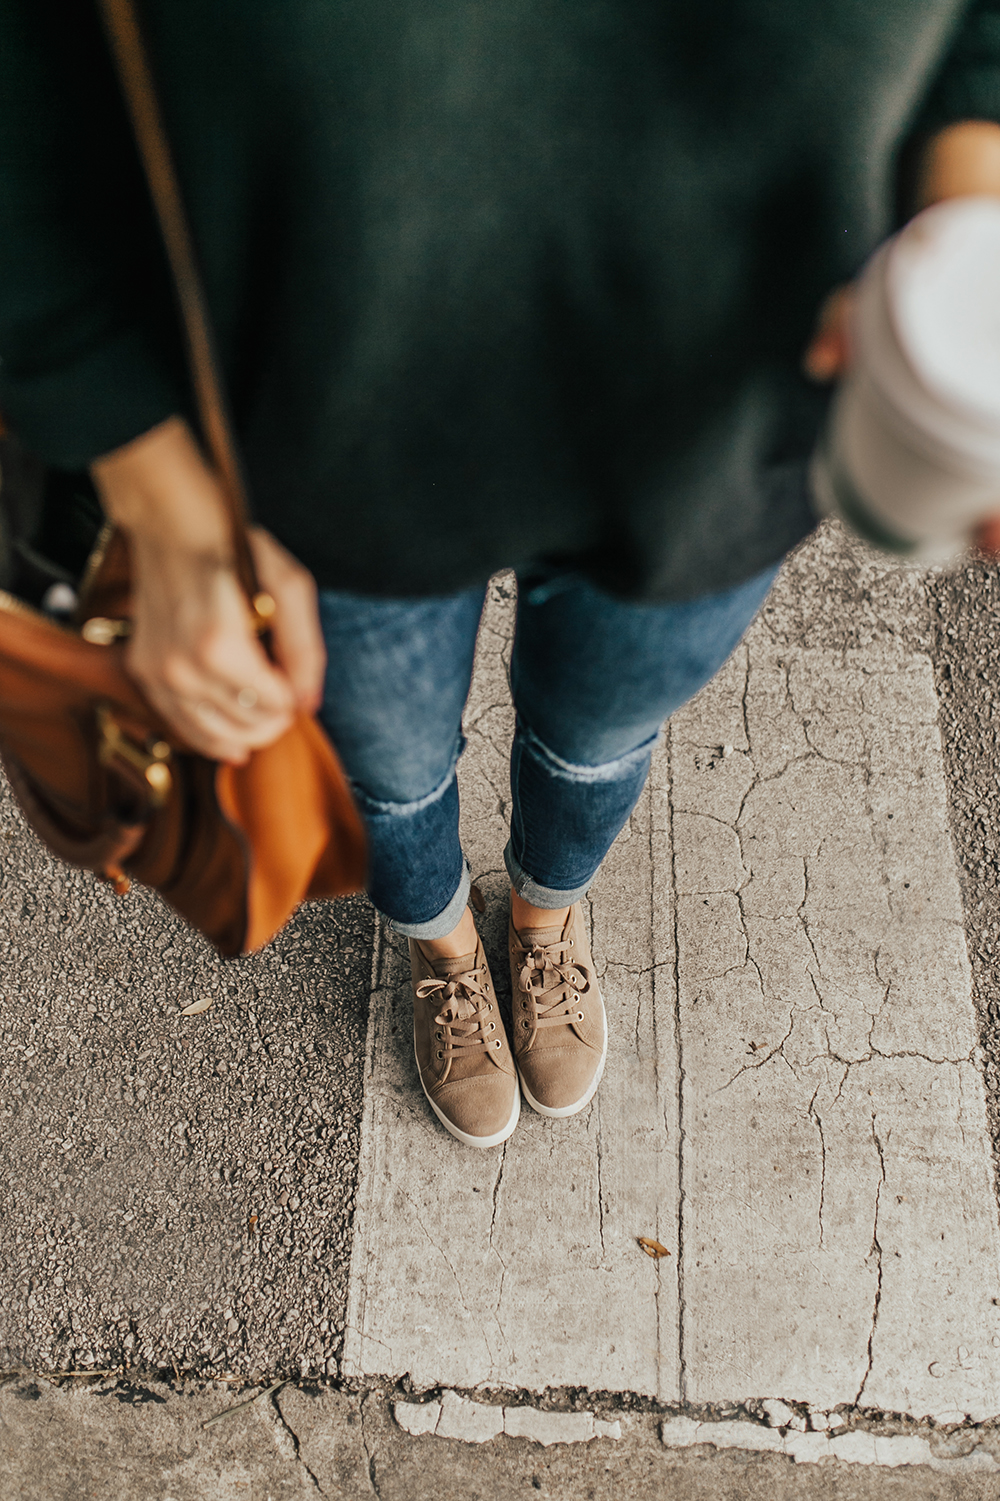 livvyland-blog-olivia-watson-austin-texas-fashion-style-blogger-koolaburra-ugg-taupe-suede-sneakers-fall-outfit-1